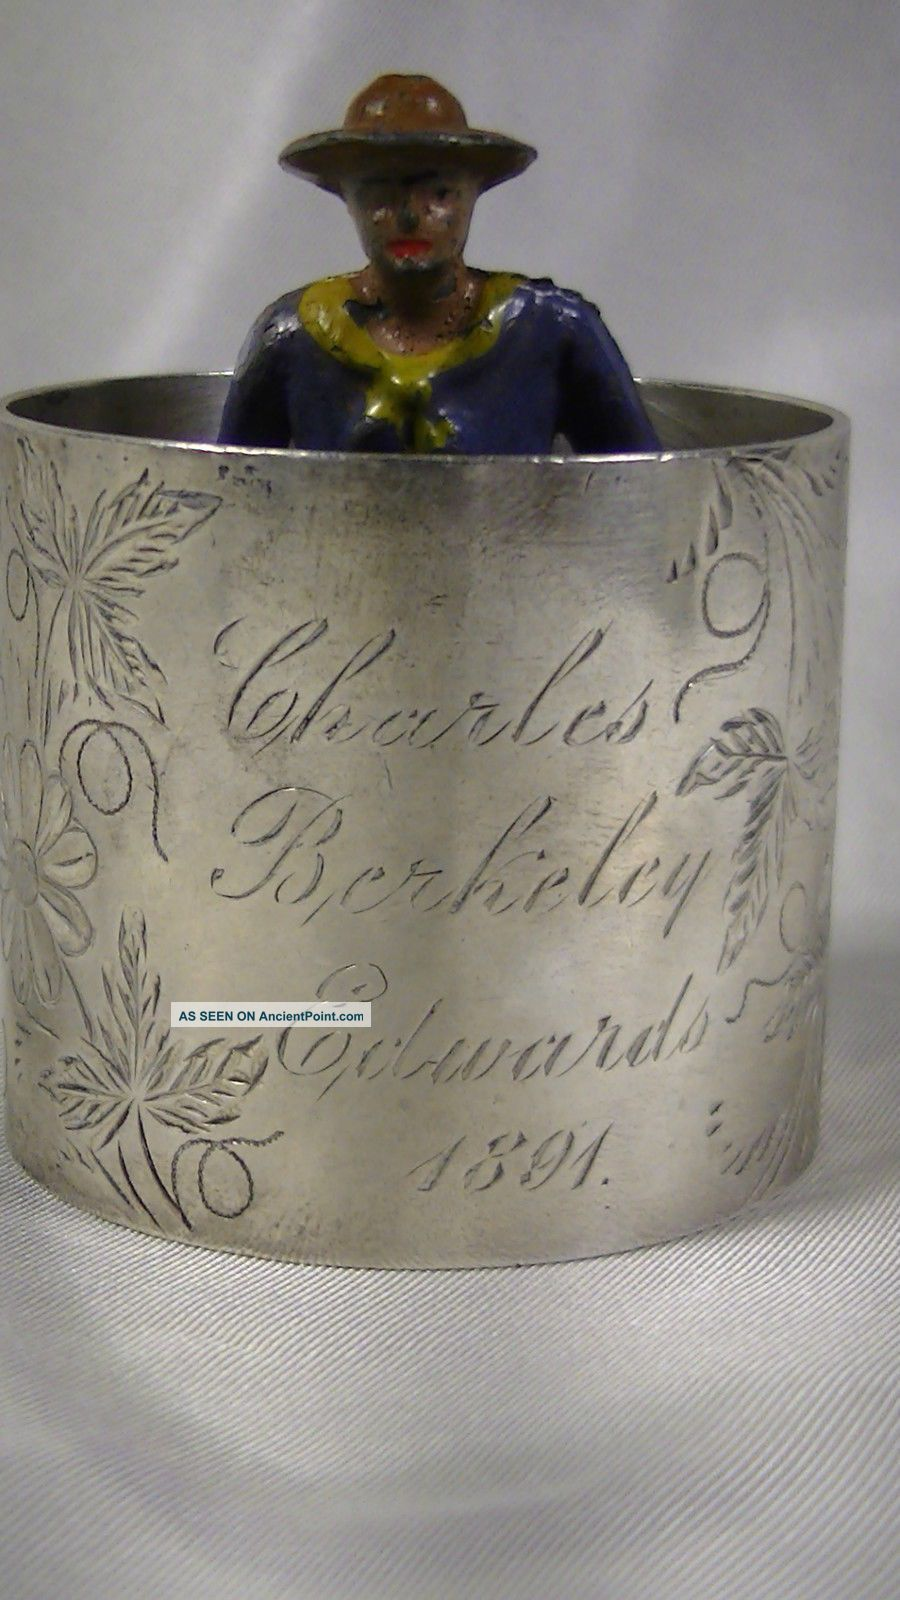 Antique Sterling Silver Napkin Ring,  Engraved 1891,  Charles Berkeley Edwards Napkin Rings & Clips photo